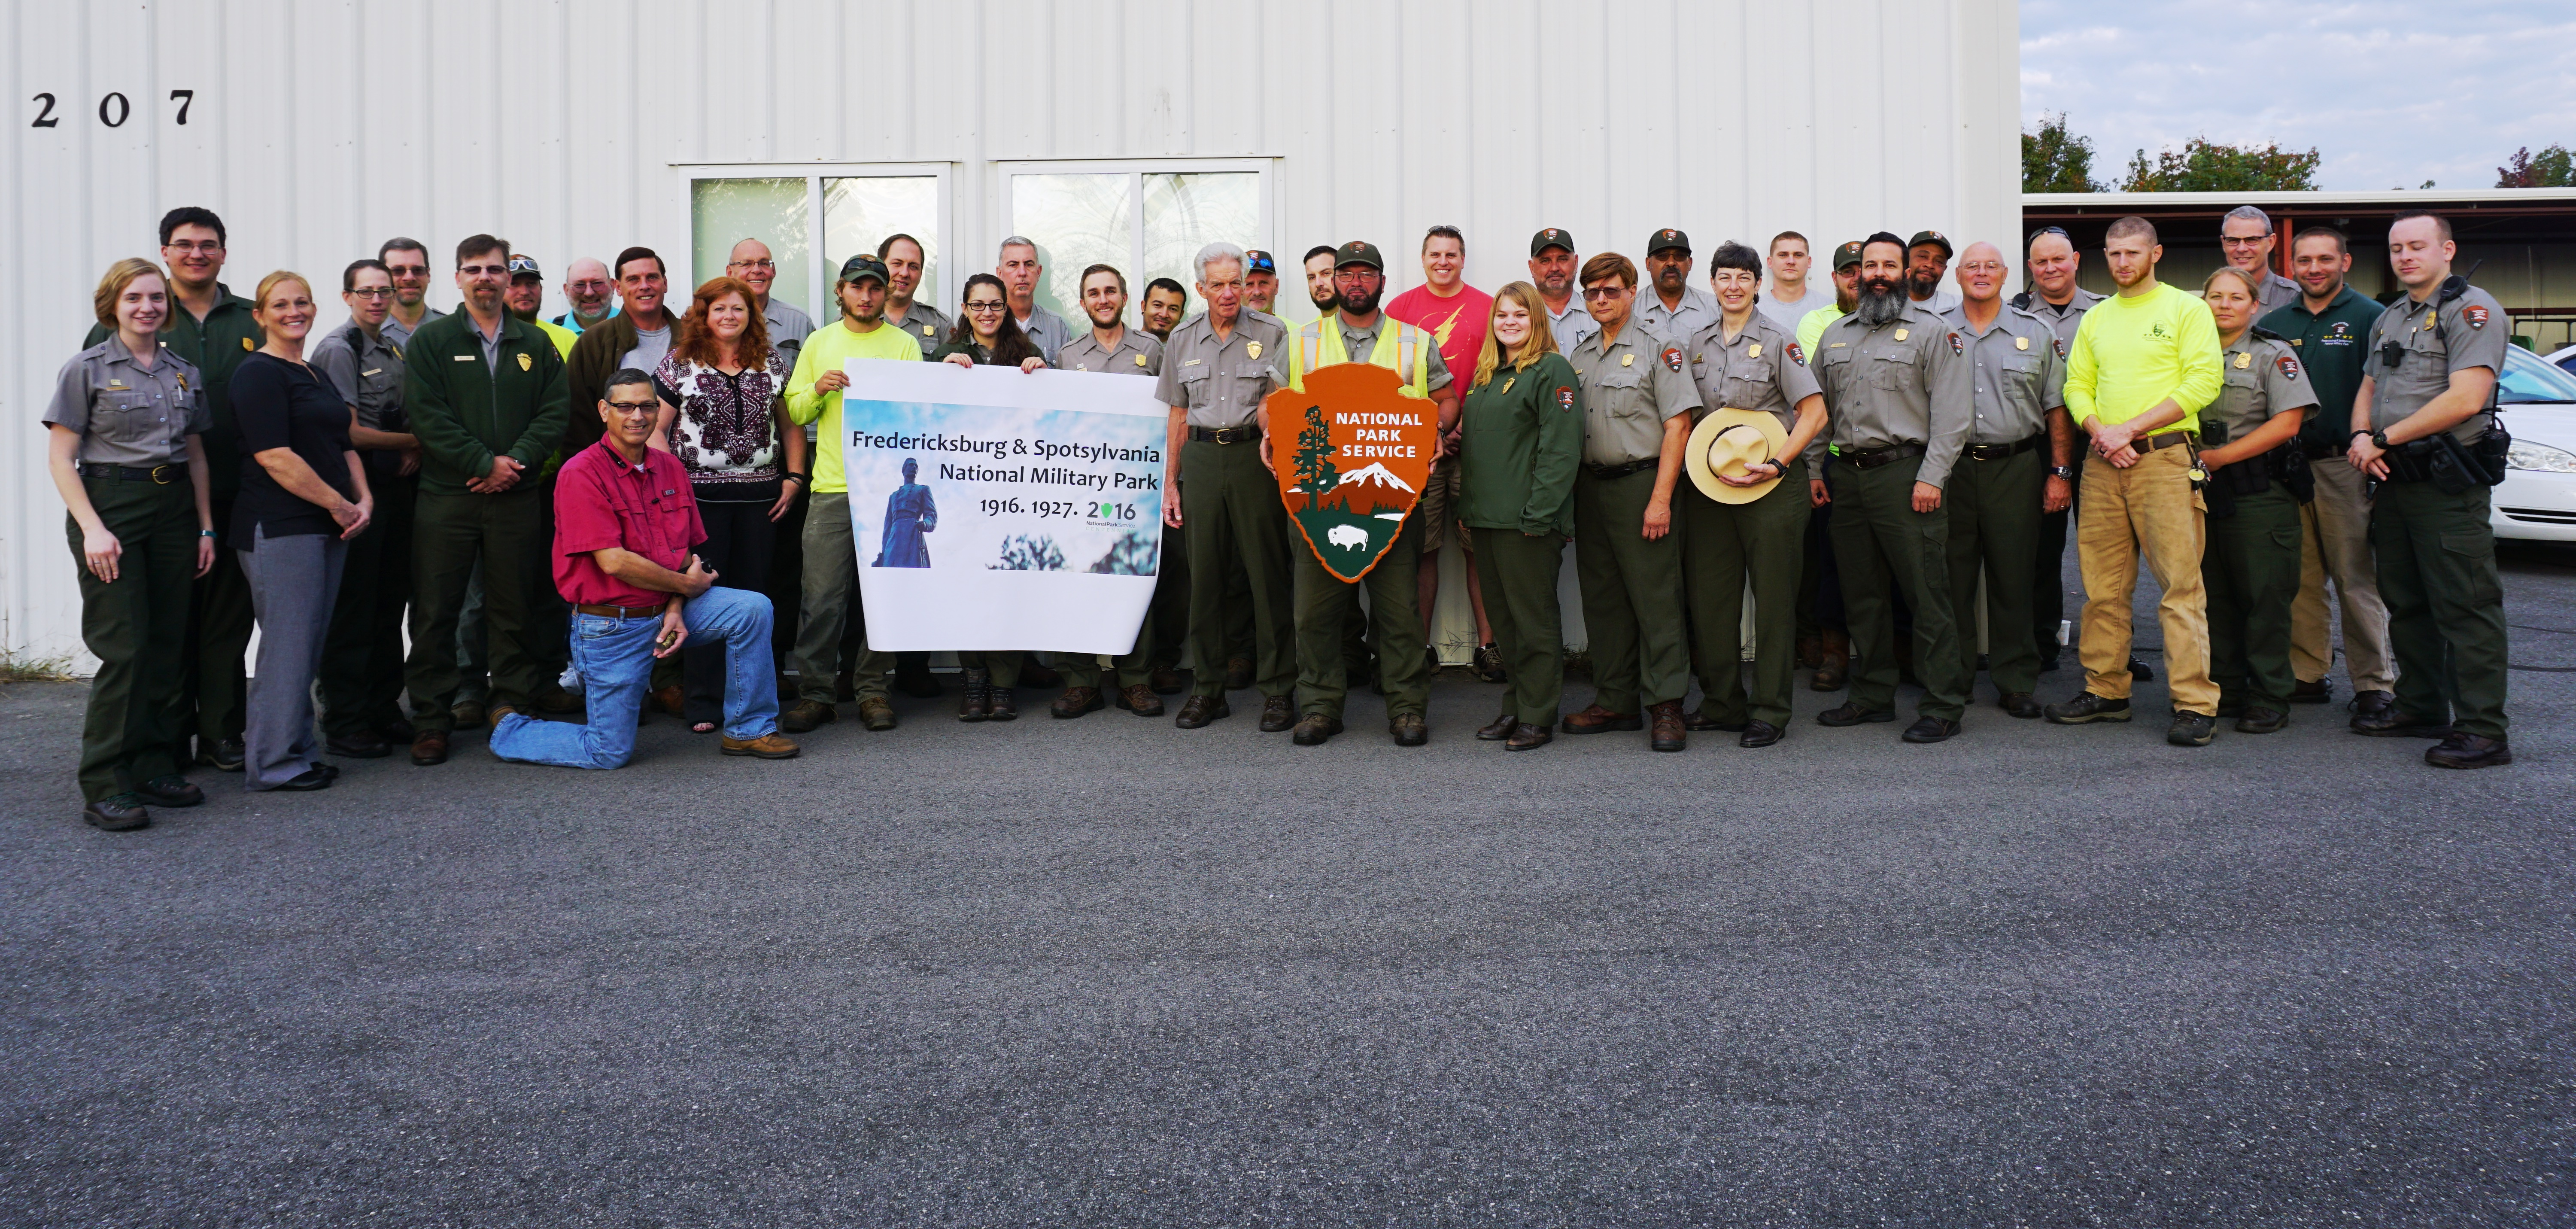 Entire park staff posing for a photo with arrowhead and white banner